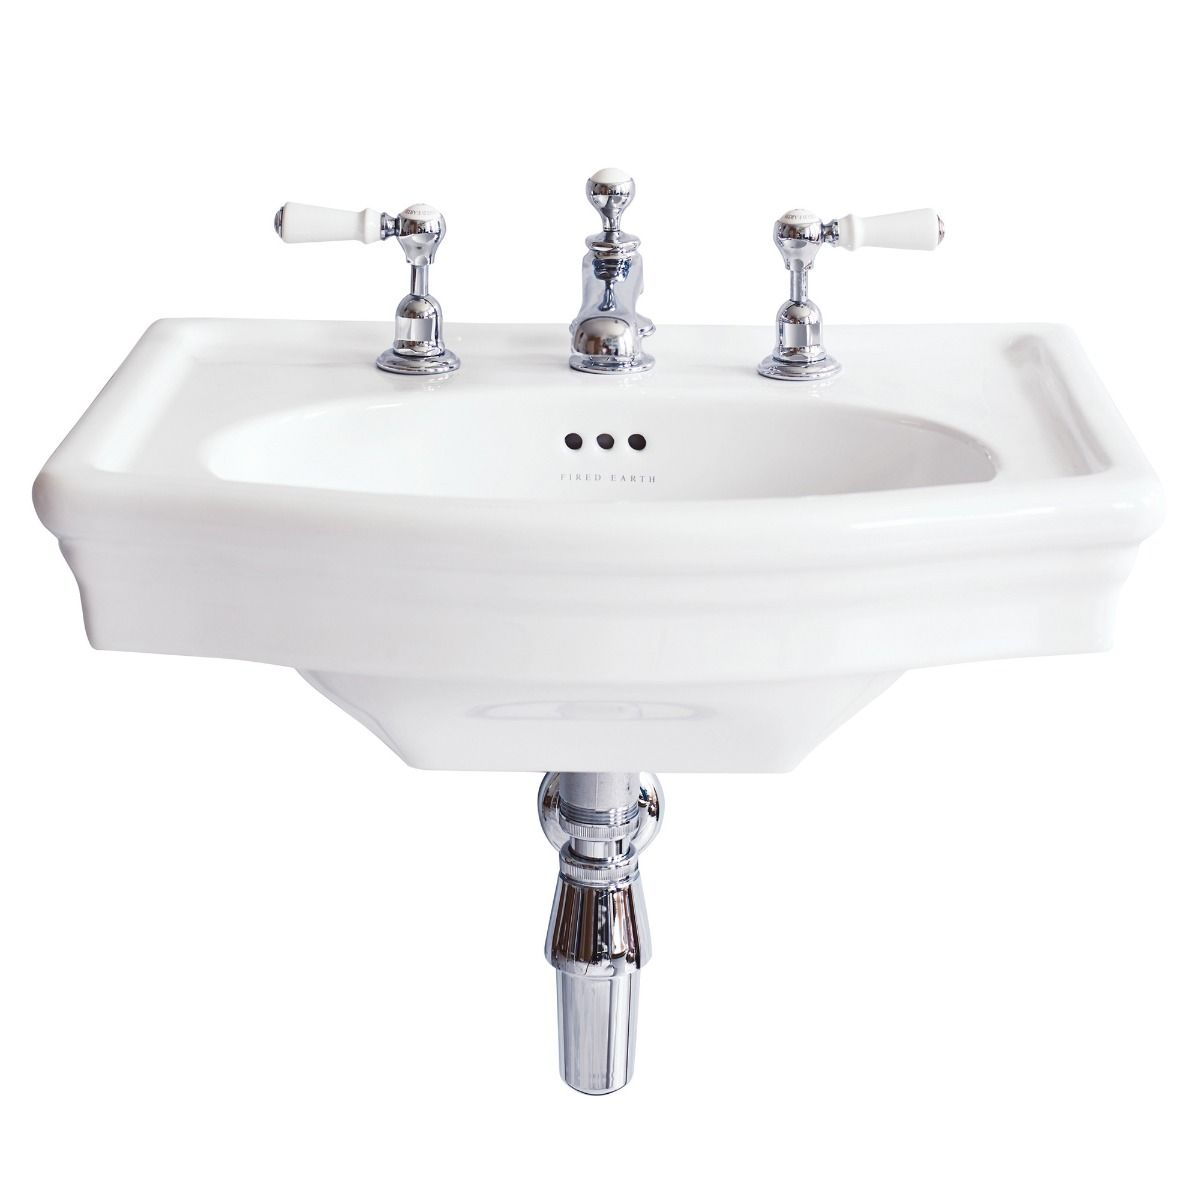 Kensington Wall-hung Cloakroom Basin